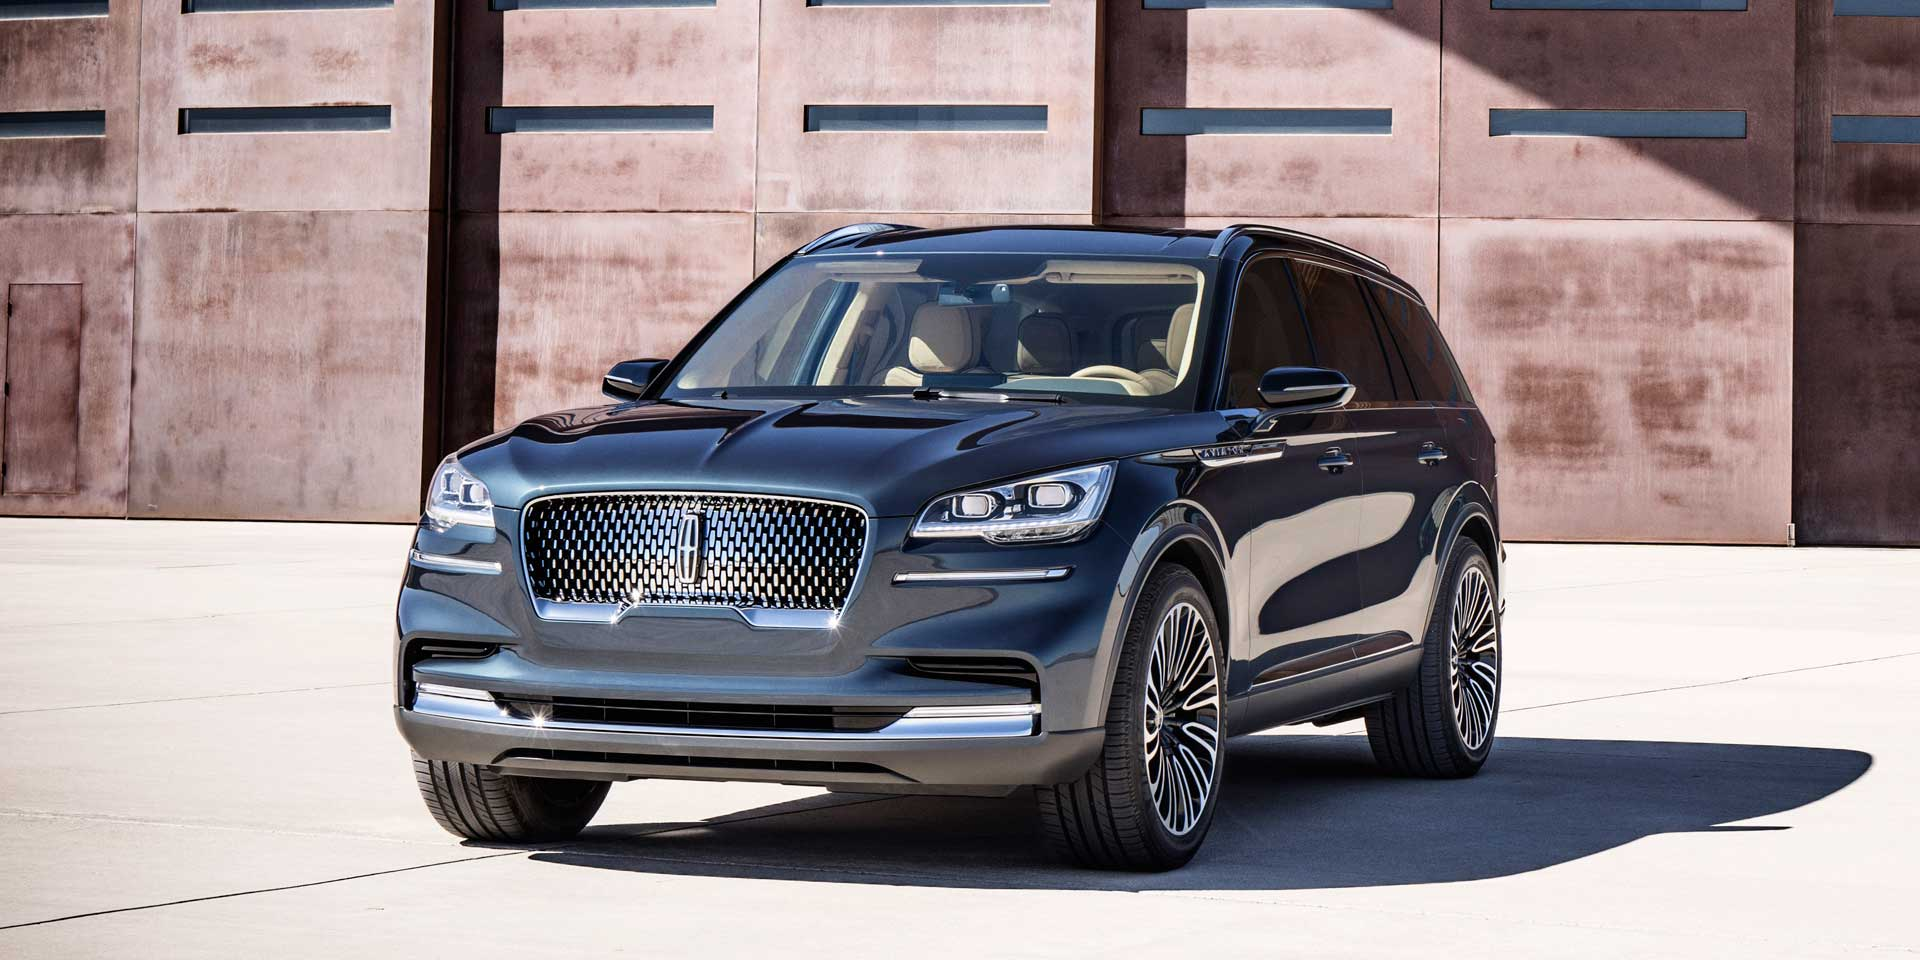 2019 Lincoln Aviator Vehicles On Display Chicago Auto Show